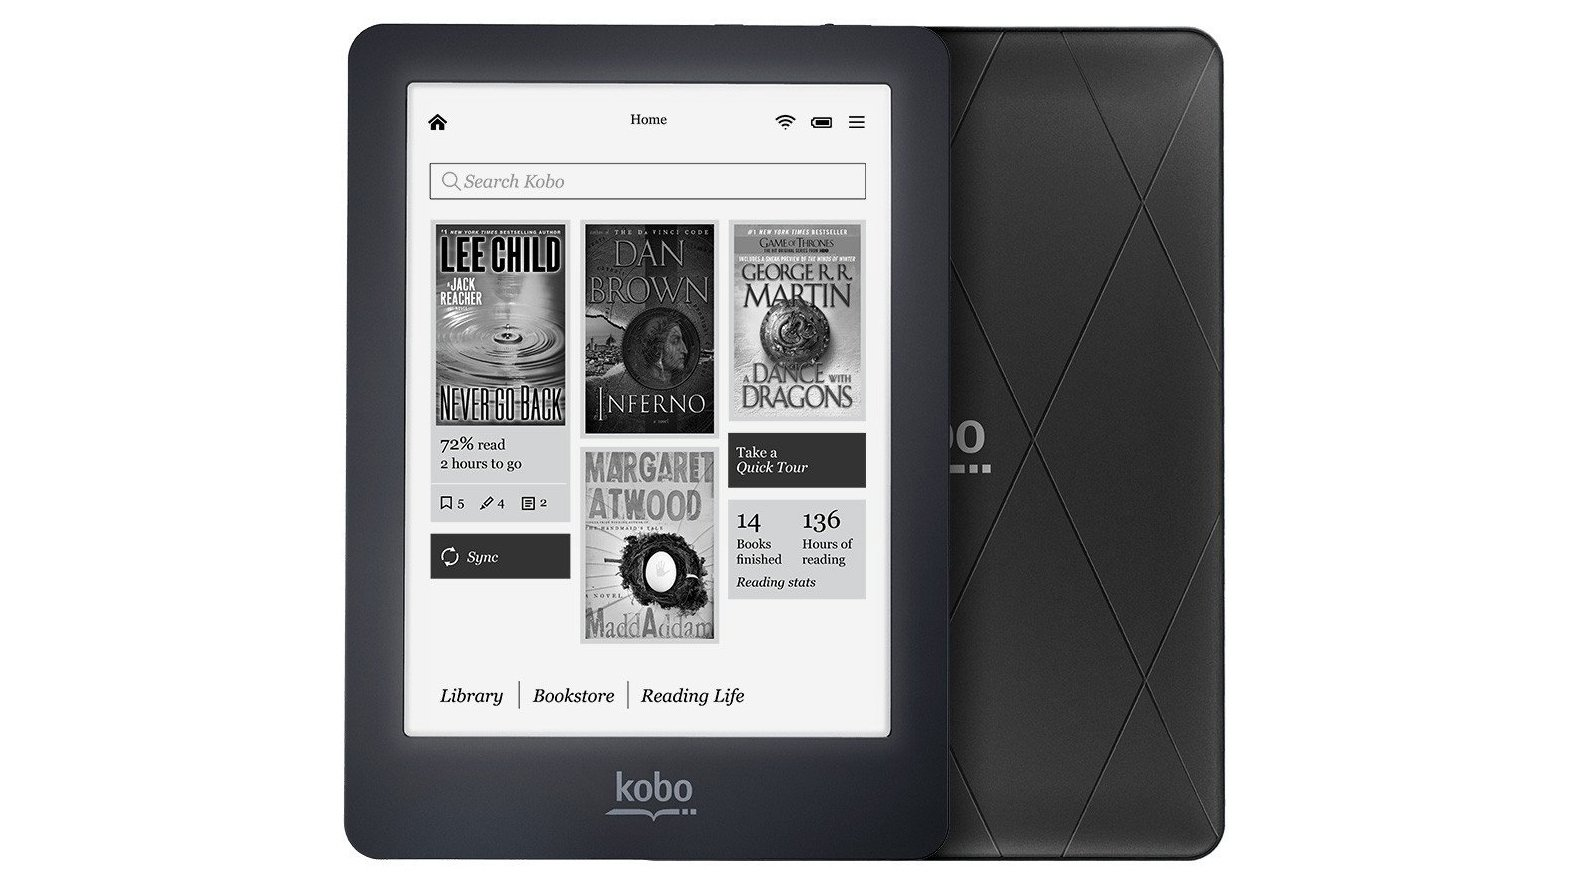 Best ebook reader to buy in 2018: Kindle and Kobo battle it out